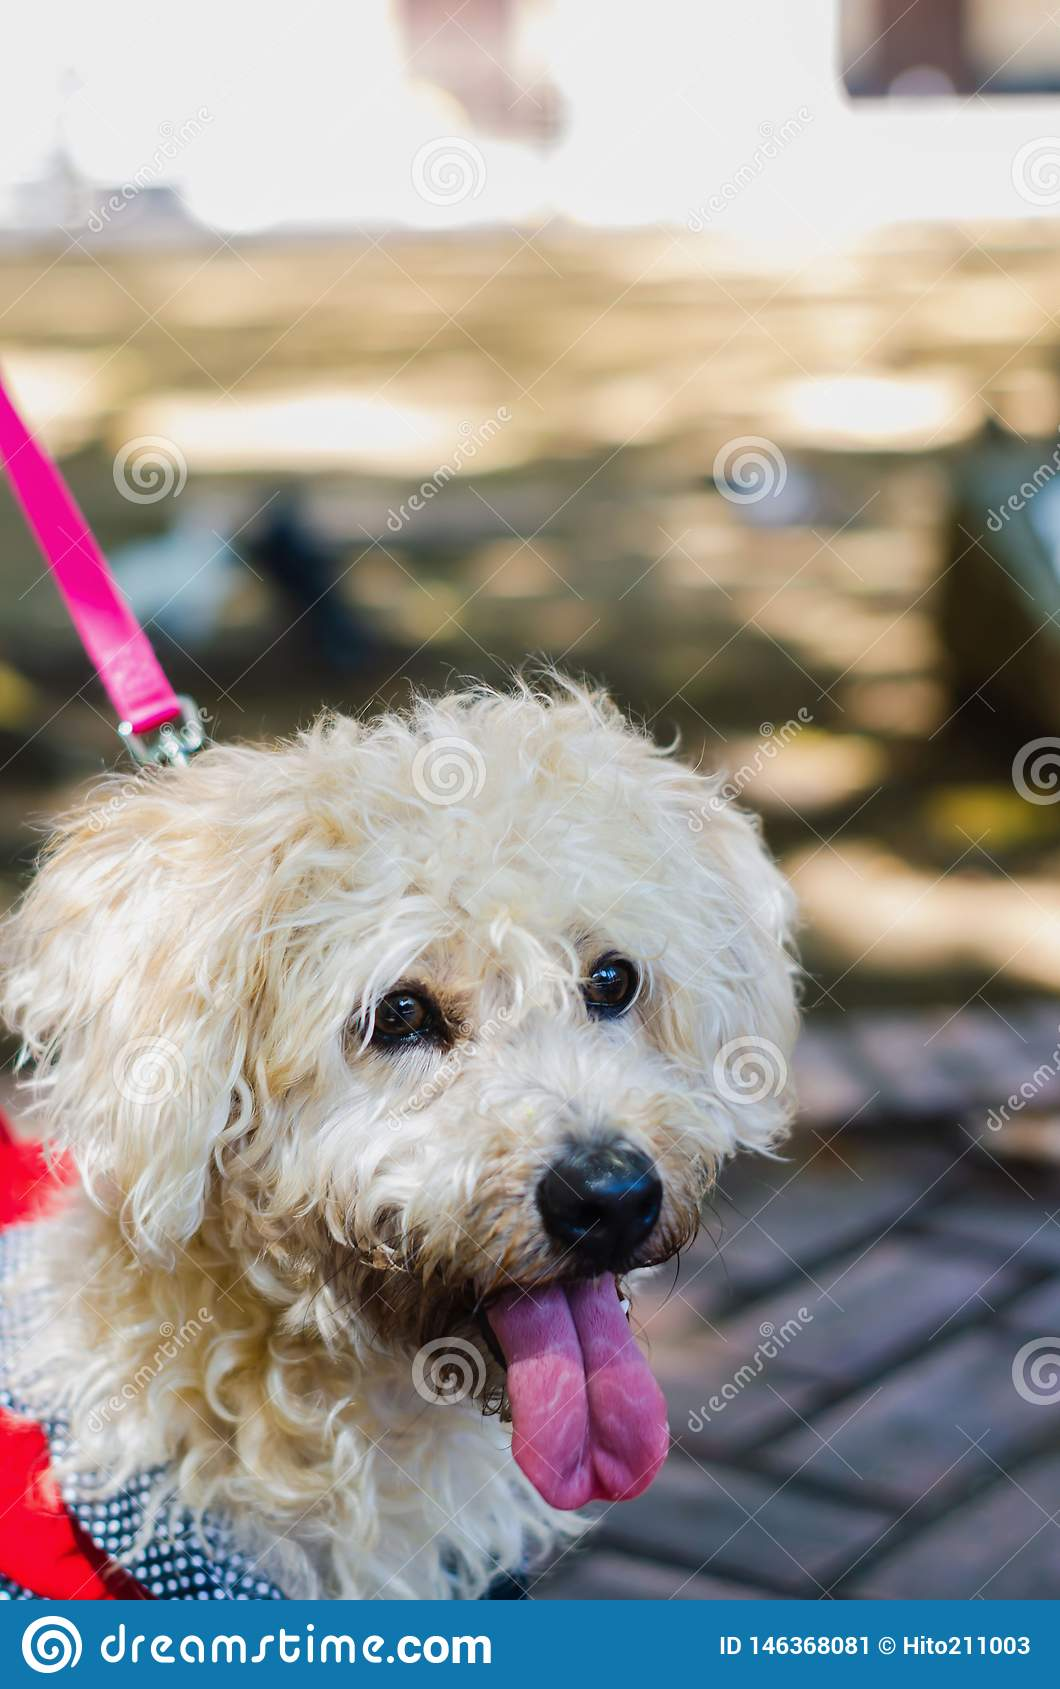 Cute poodle dressed walking white in park